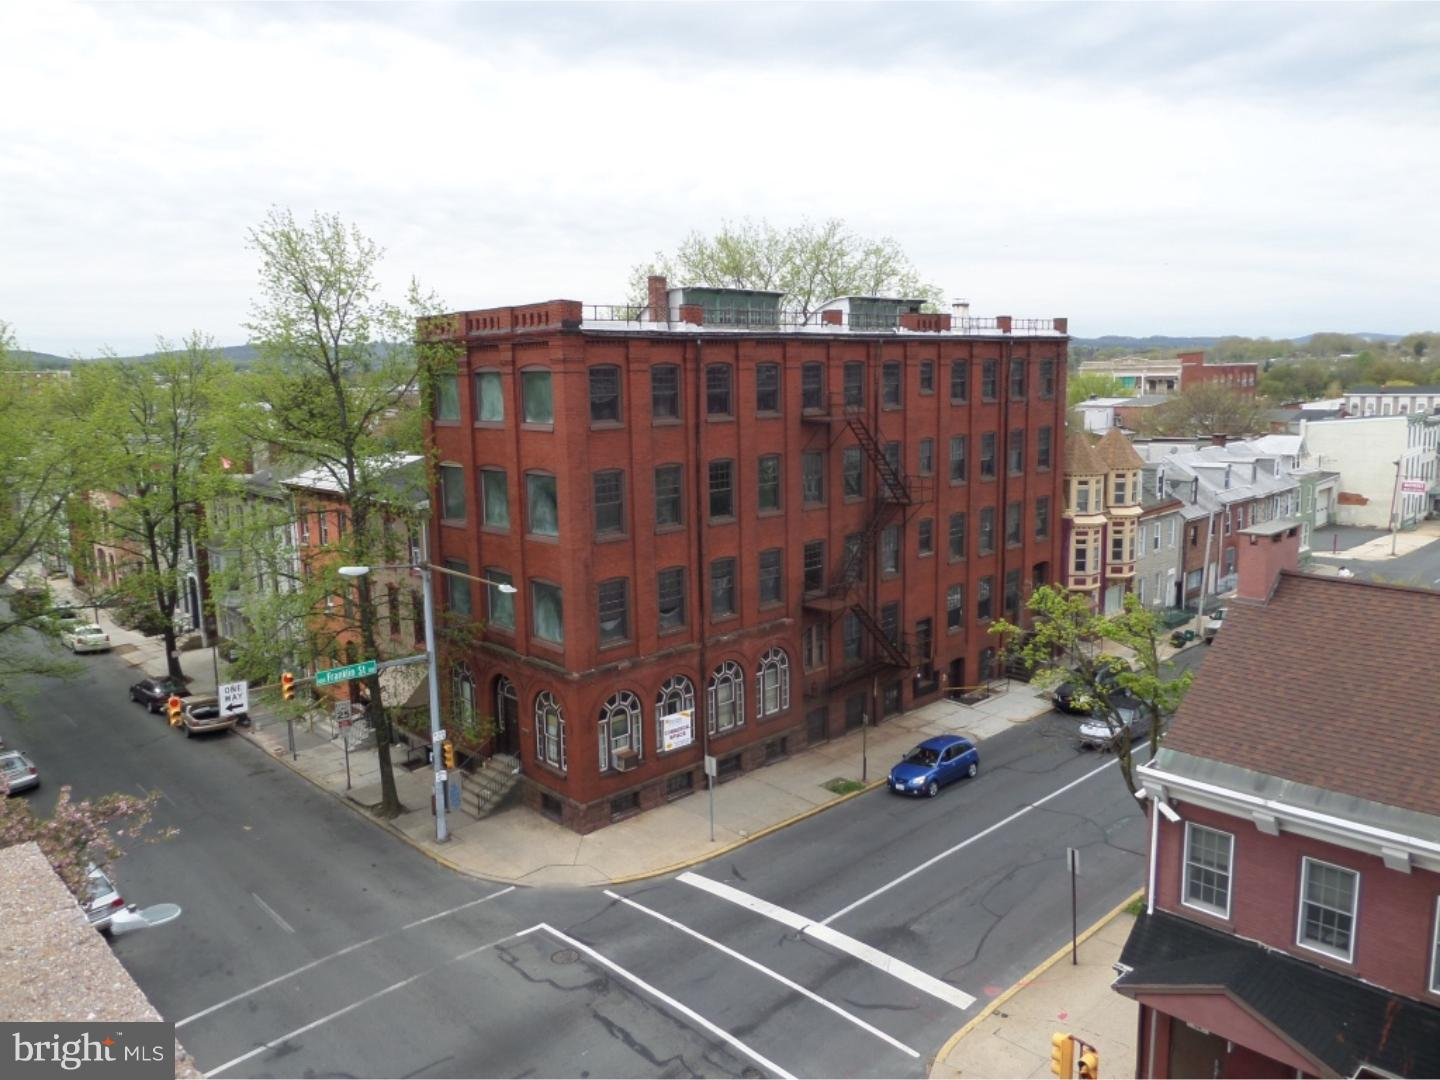 100 S 4 Th Street, Reading, PA 19602 - SOLD LISTING, MLS # 1007541072    RE/MAX of Reading